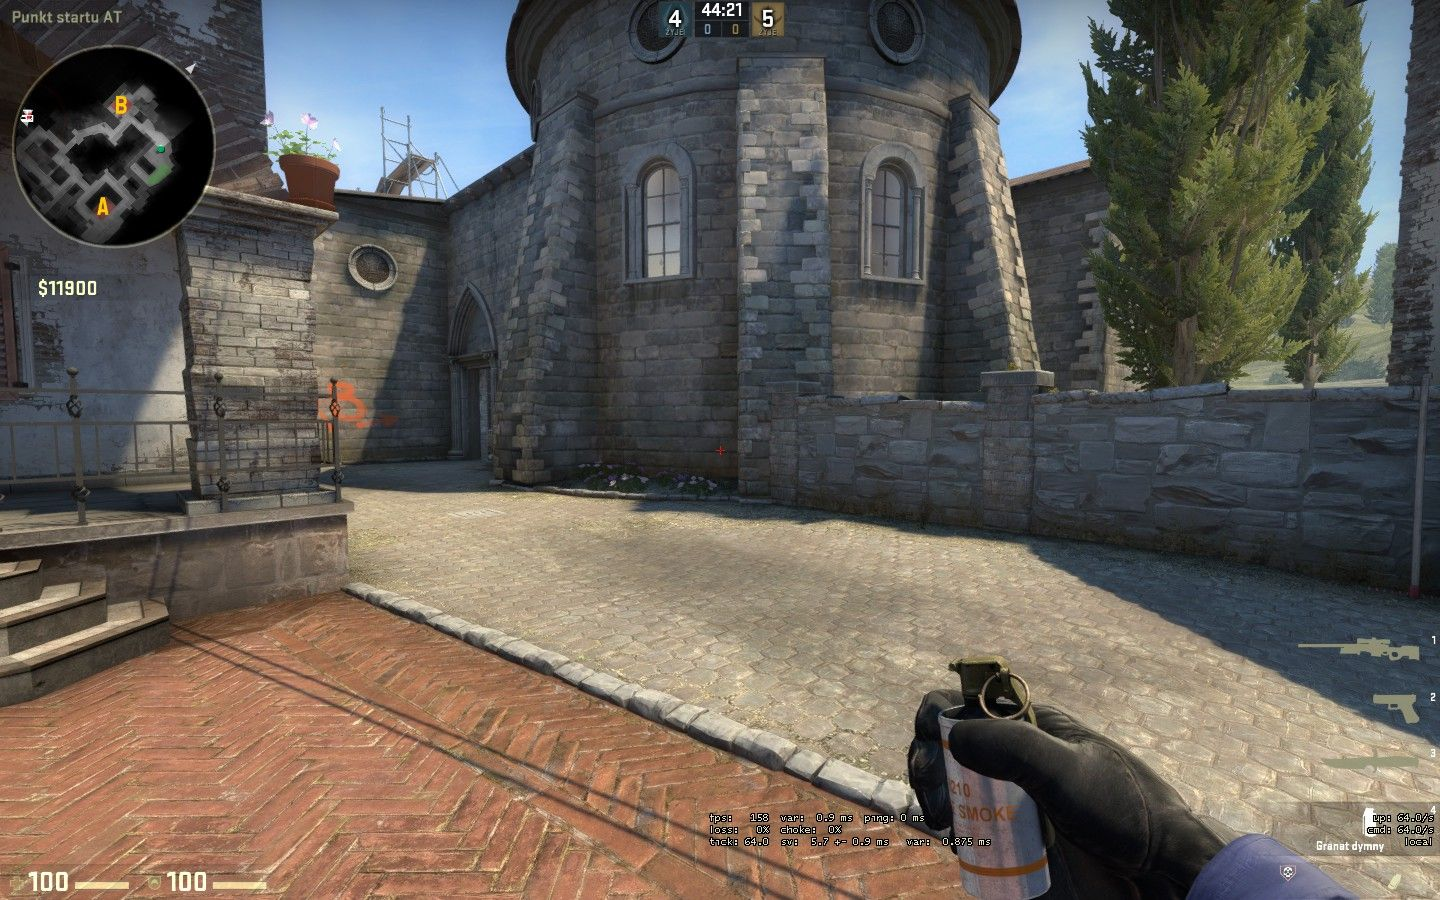 how to make cs go faster